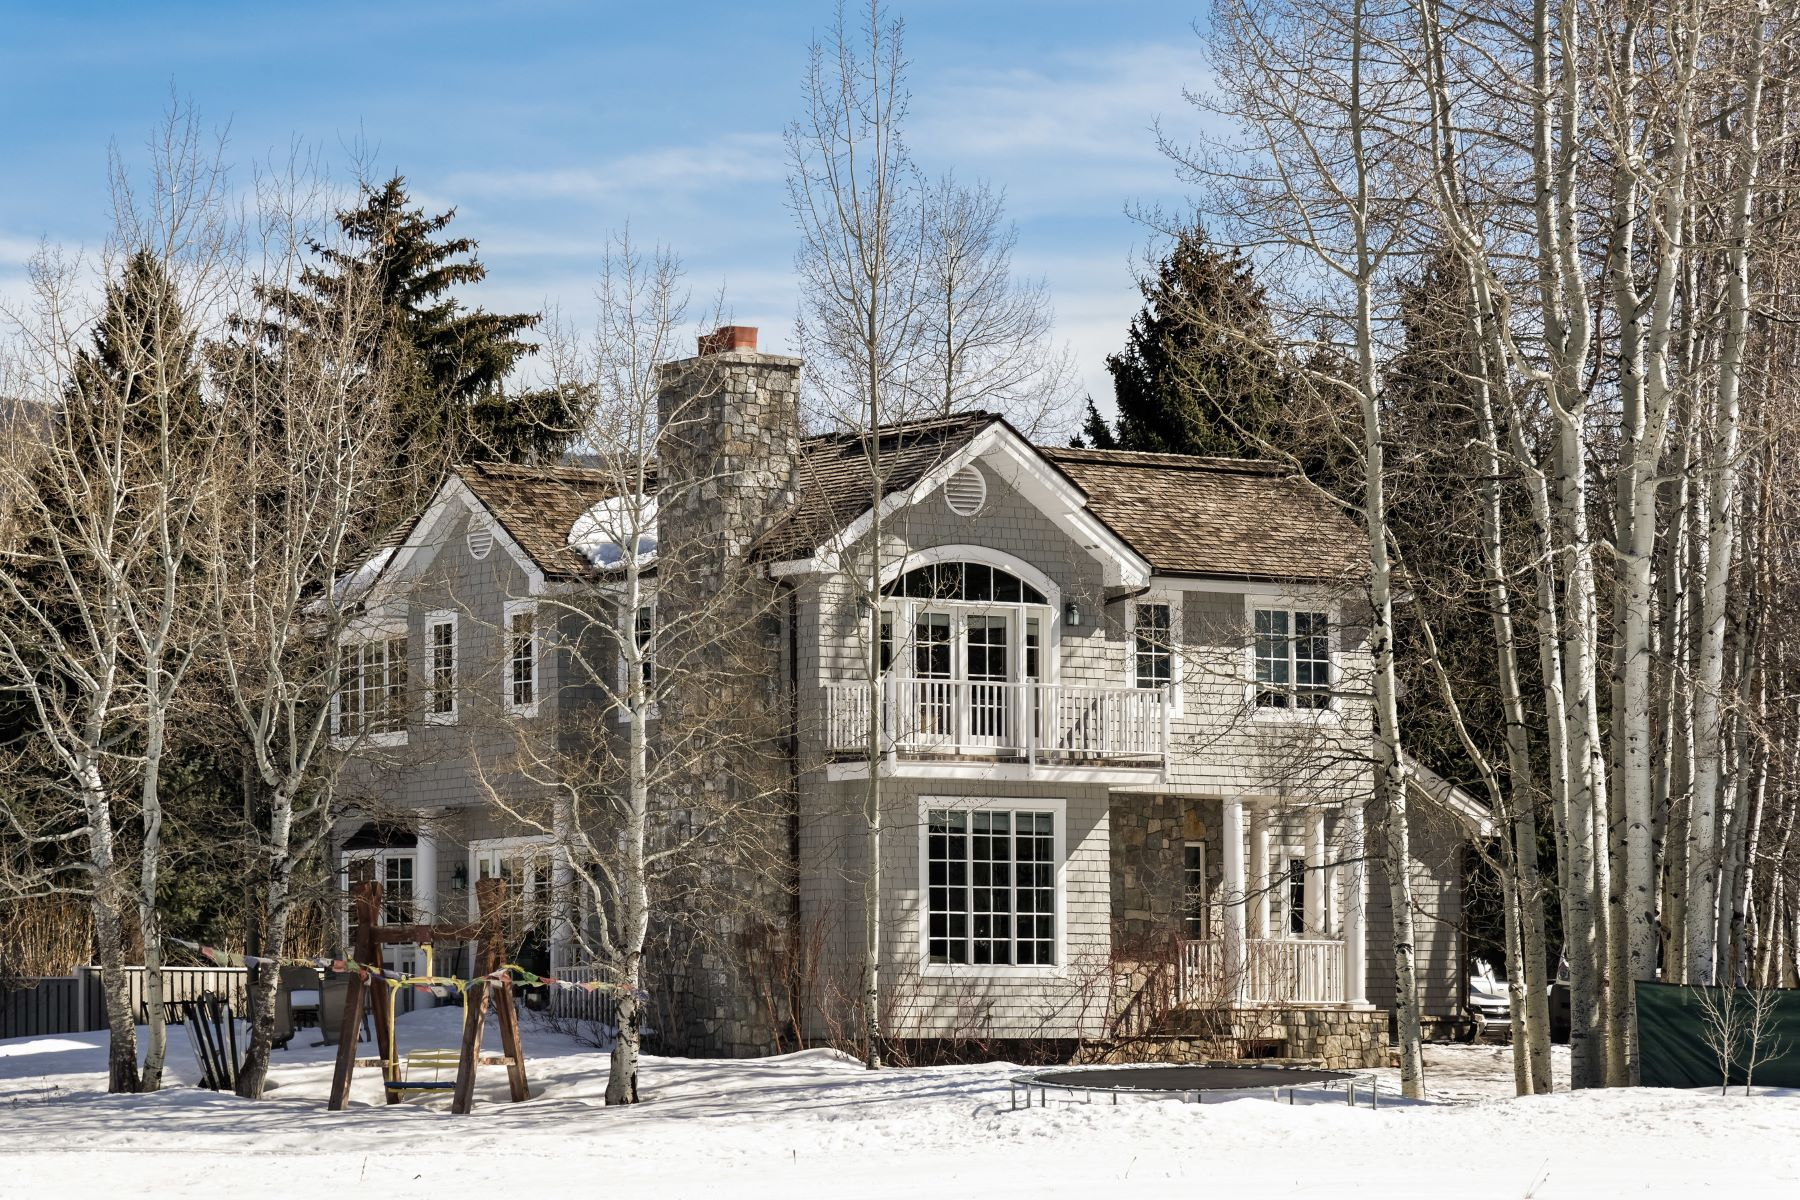 дуплекс для того Продажа на Beautifully Appointed Aspen Home on the Golf Course 1472 Sierra Vista, West Aspen, Aspen, Колорадо, 81611 Соединенные Штаты